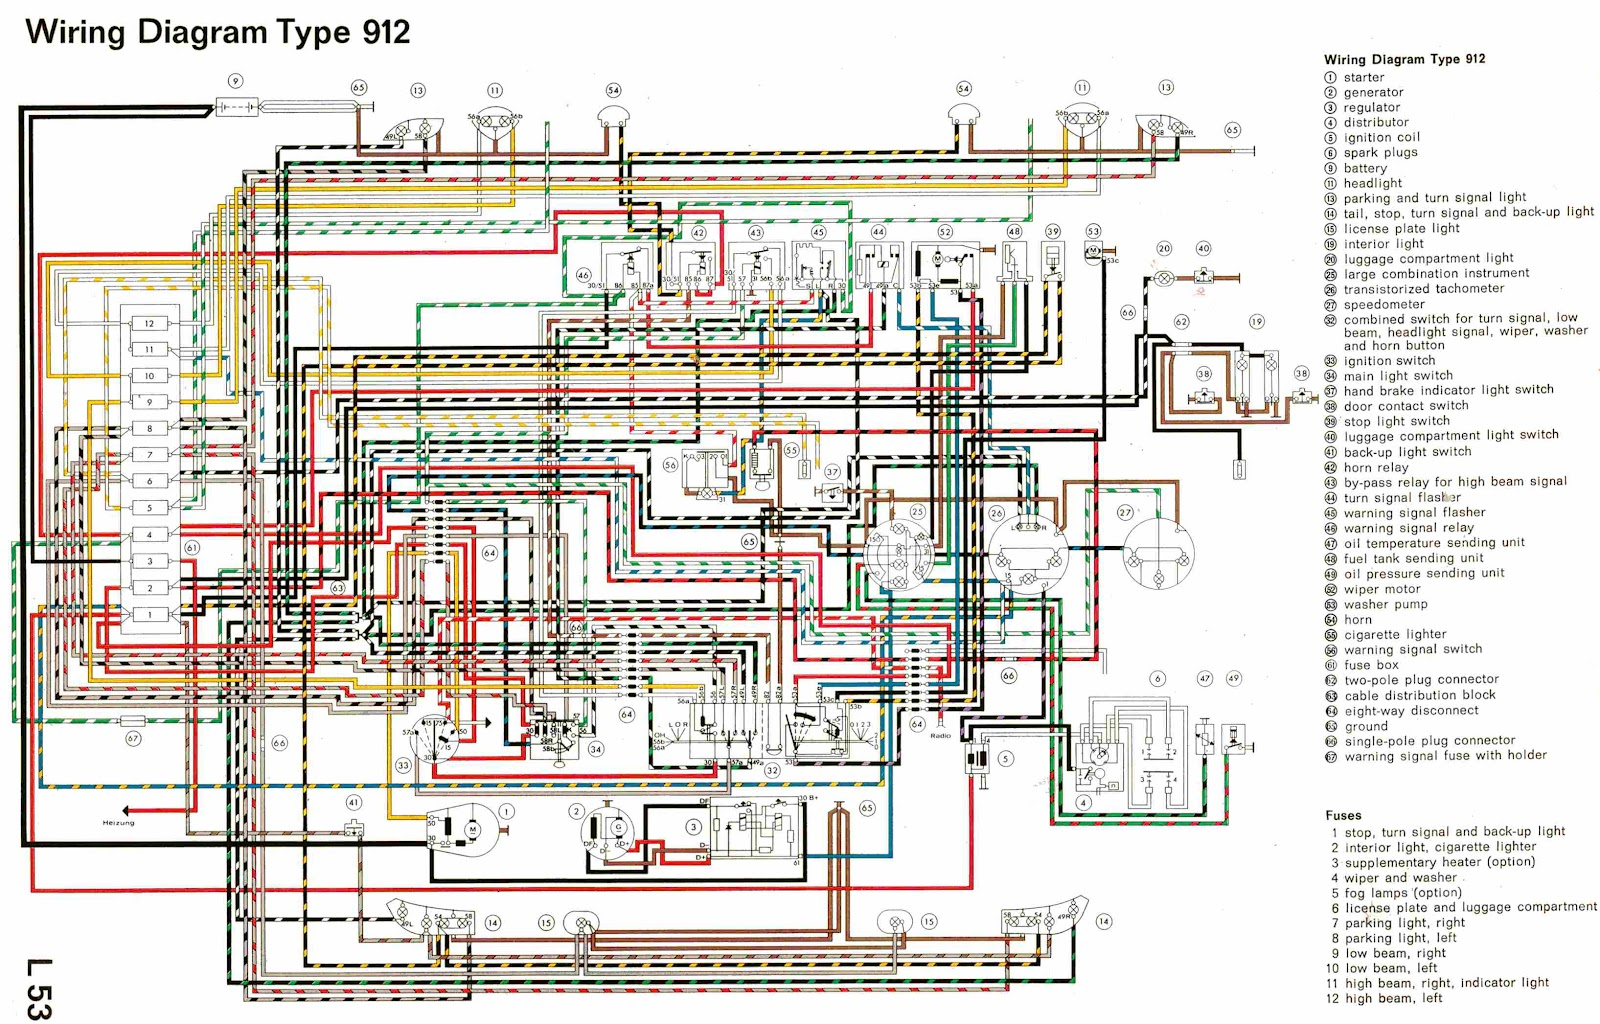 Porsche+Type+912+Complete+Electrical+Wiring+Diagram 100 [ home network wiring design ] need wiring diagram for  at honlapkeszites.co